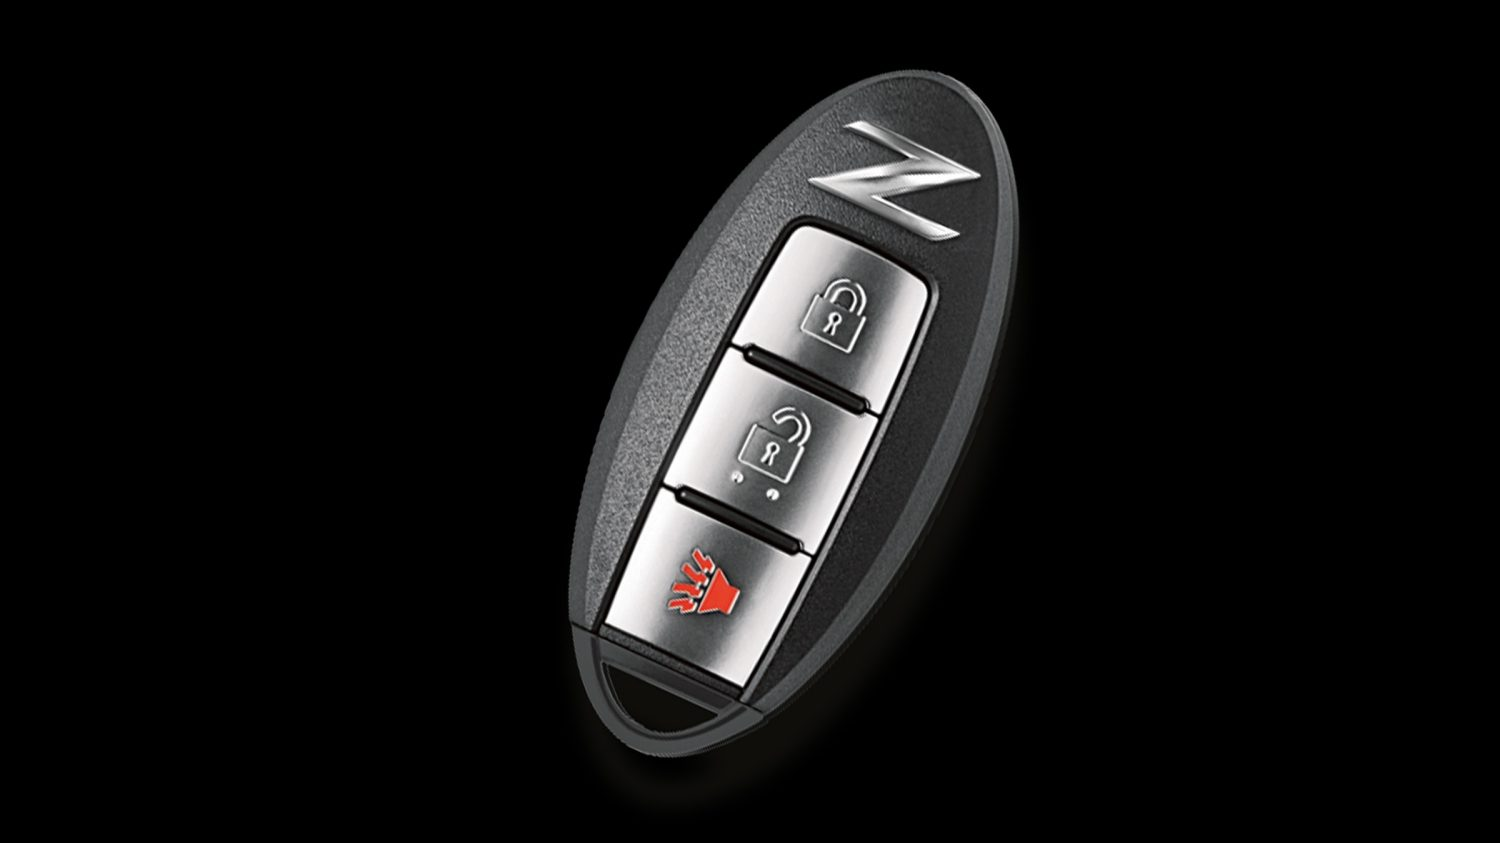 2018 Nissan 370z Features 2 Door Coupe Sports Car Engine Diagram Intelligent Key Fob